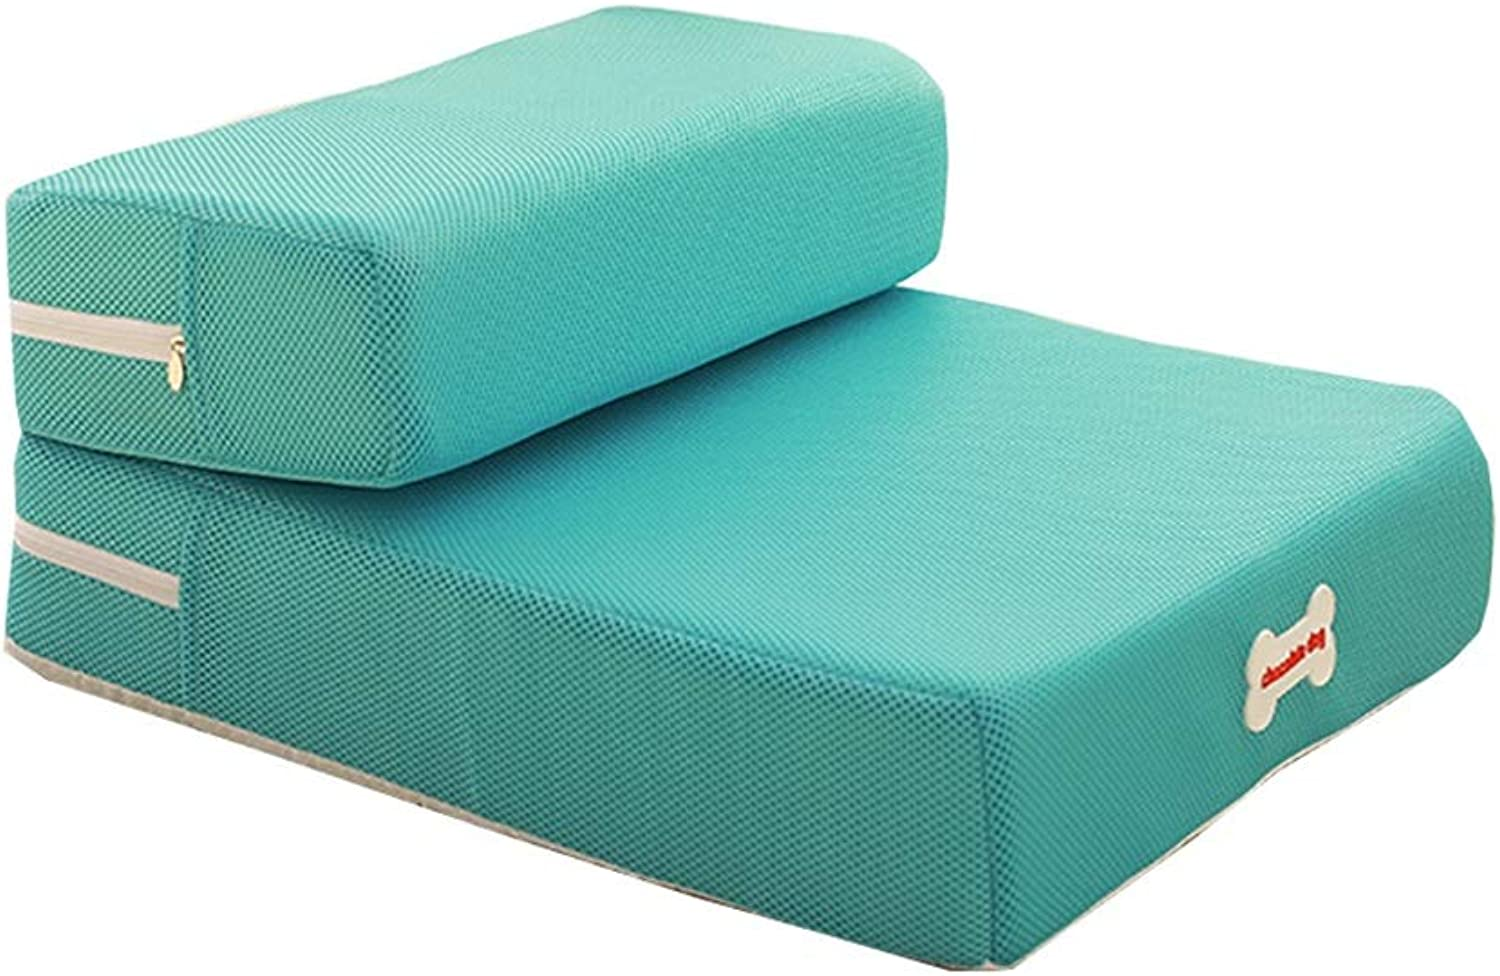 Pet Stairs Dog Stairs Cat Steps Foldable Dog Stairs For Small Dogs, 2 Step for Cats, Removable And Washable Comfort Cover (color   GREEN, Size   Set of 2)